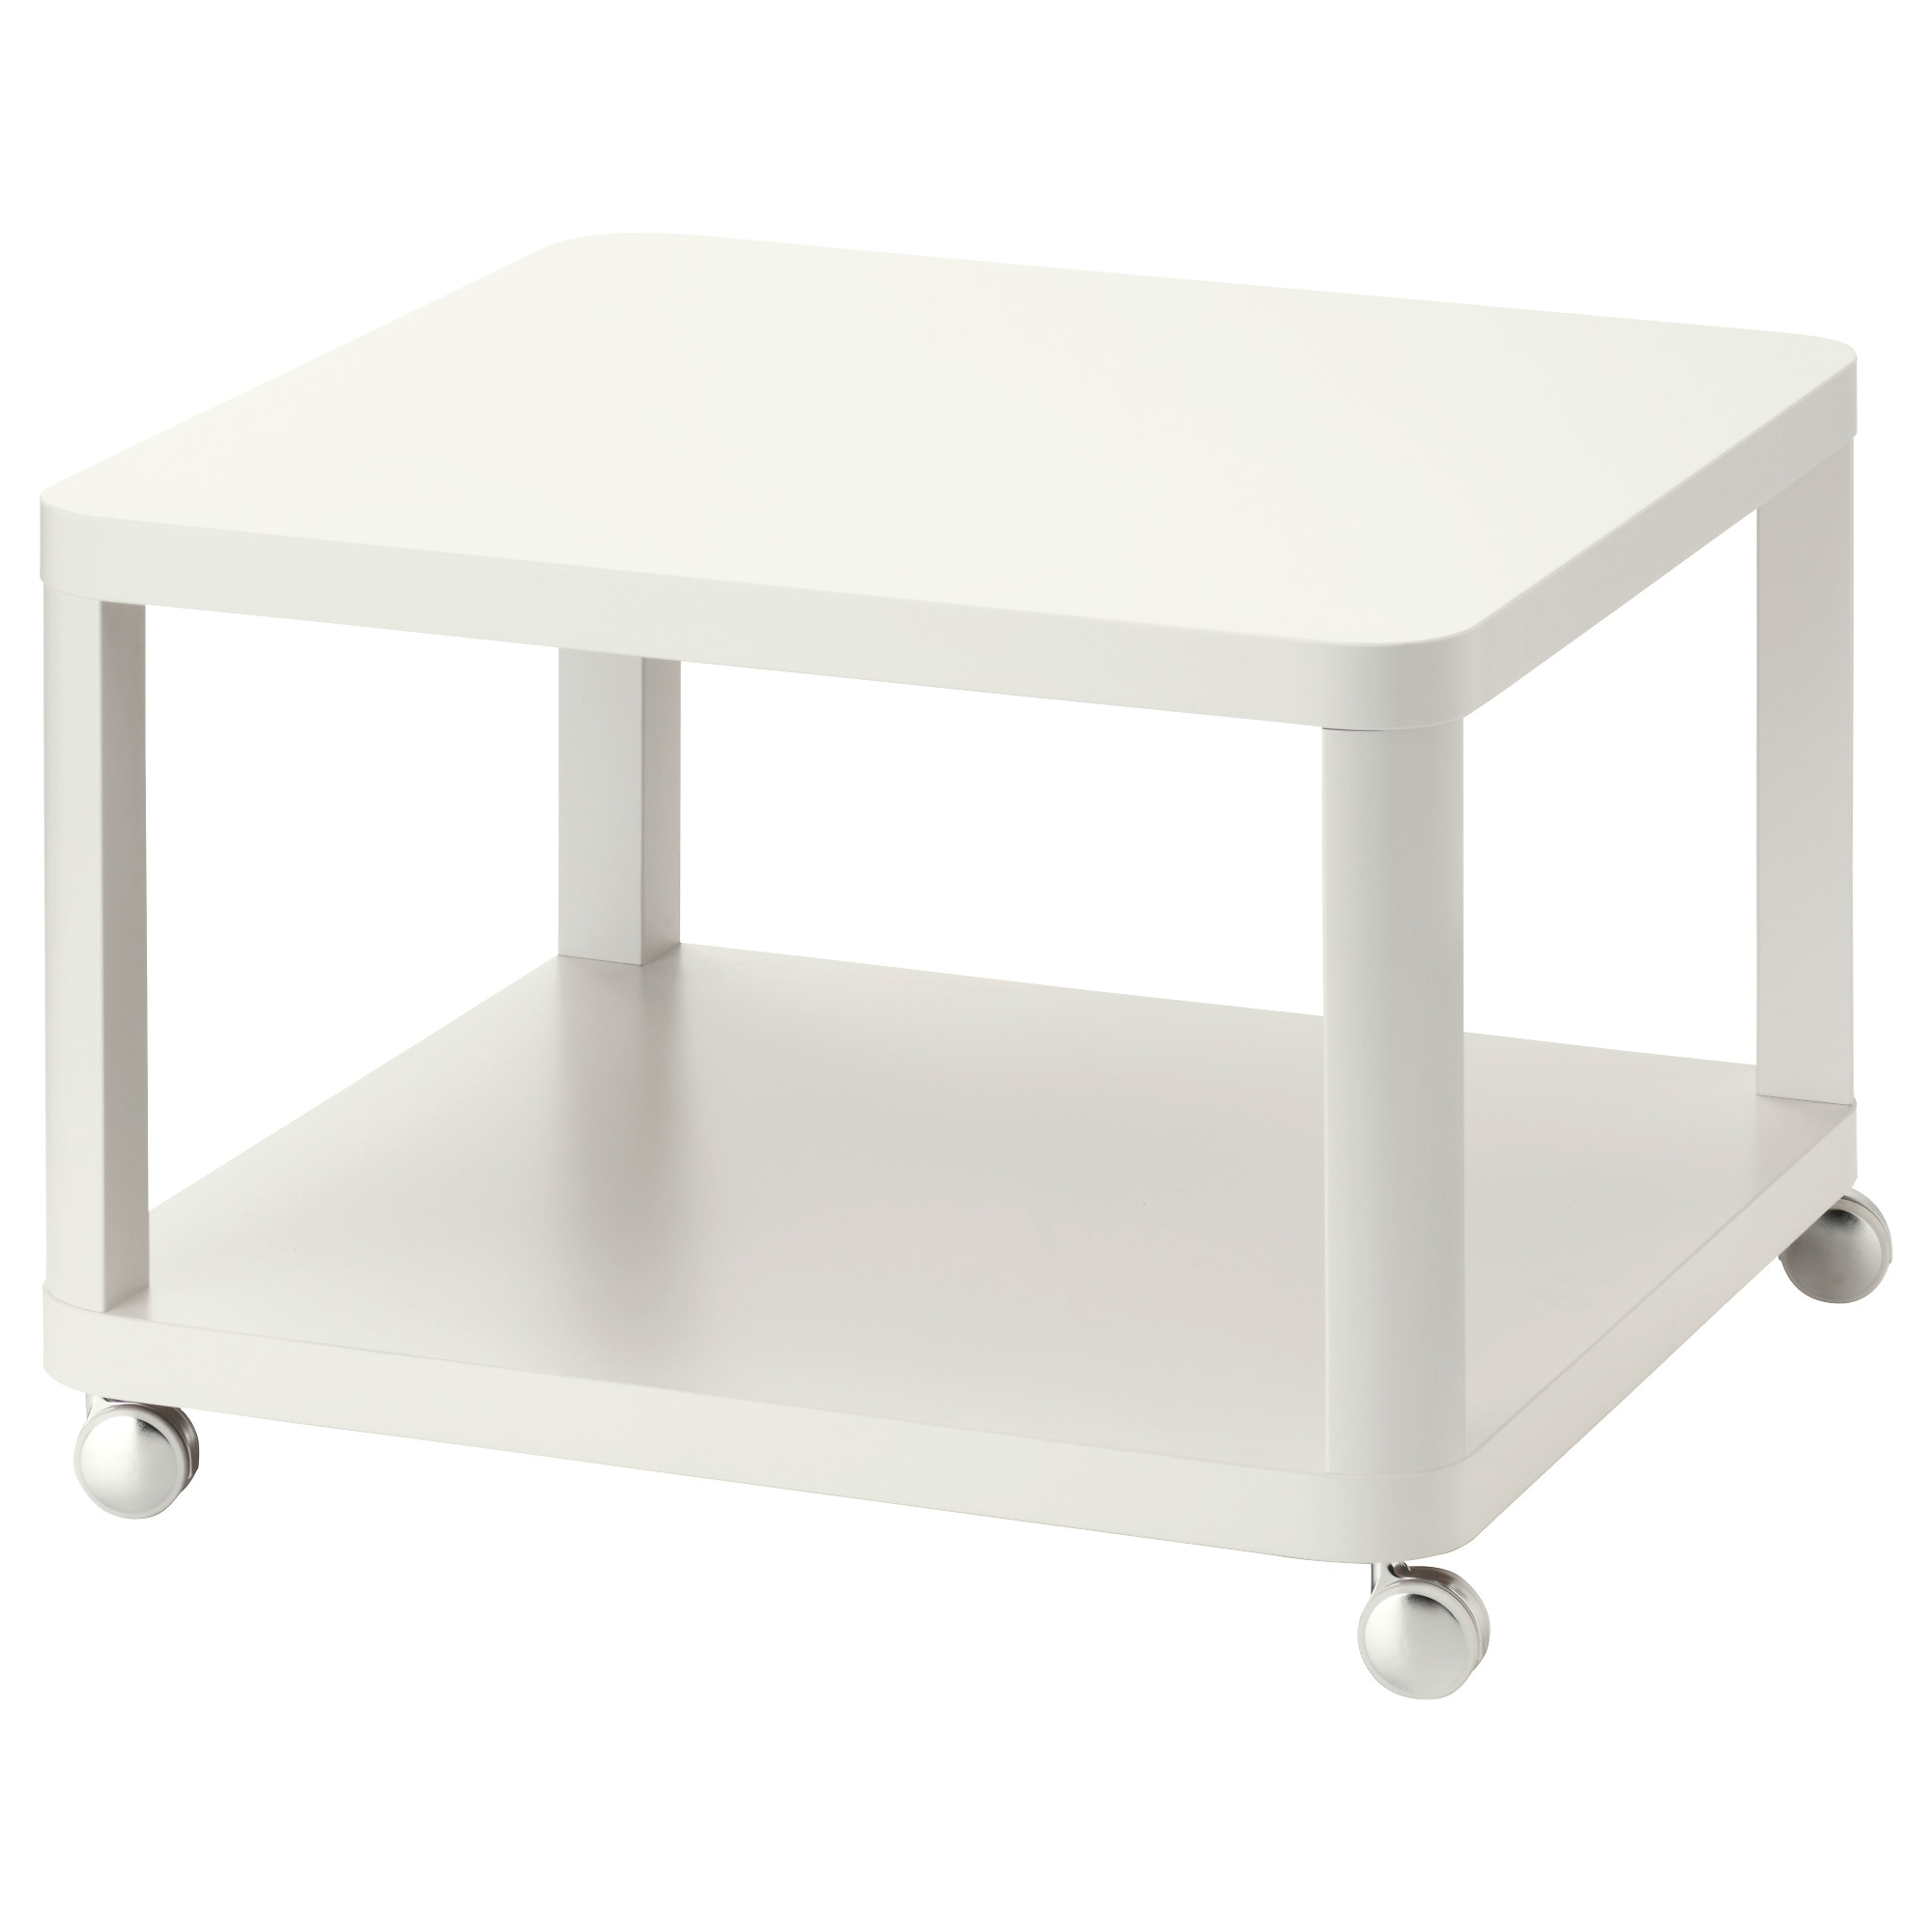 TINGBY Side table on casters IKEA